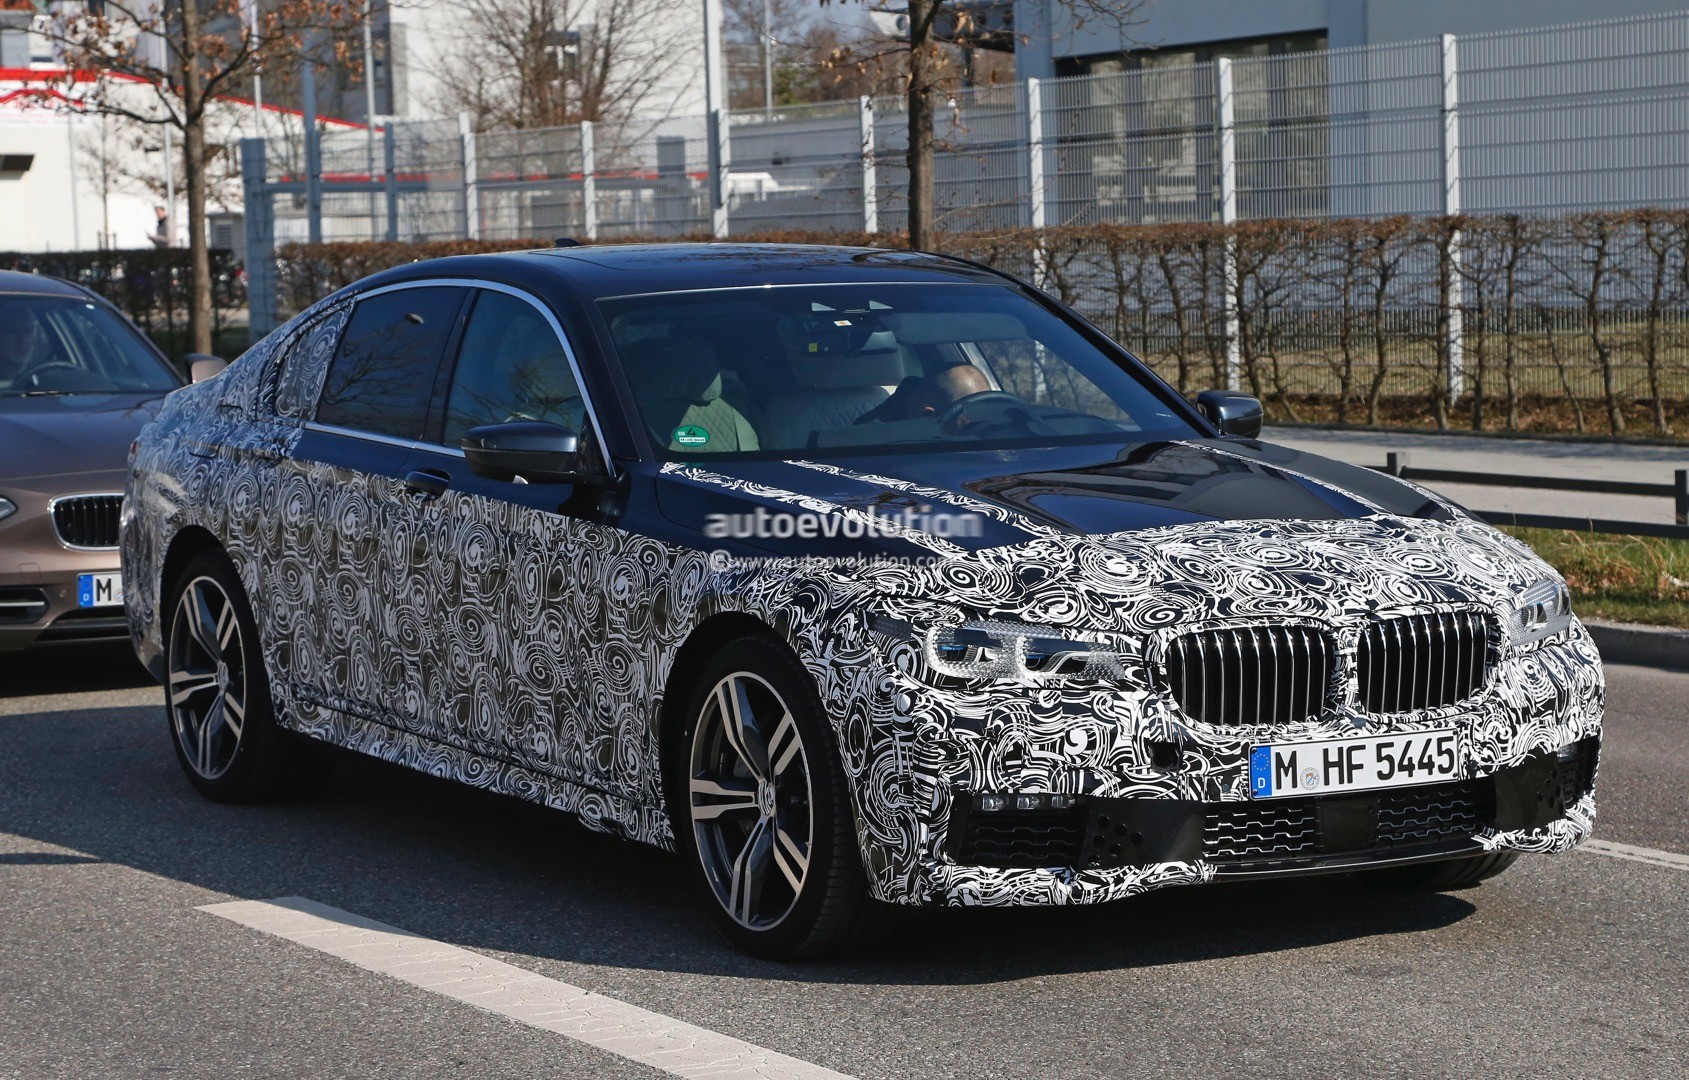 2016 bmw g11 7 series spied in m sport guise production ready autoevolution. Black Bedroom Furniture Sets. Home Design Ideas